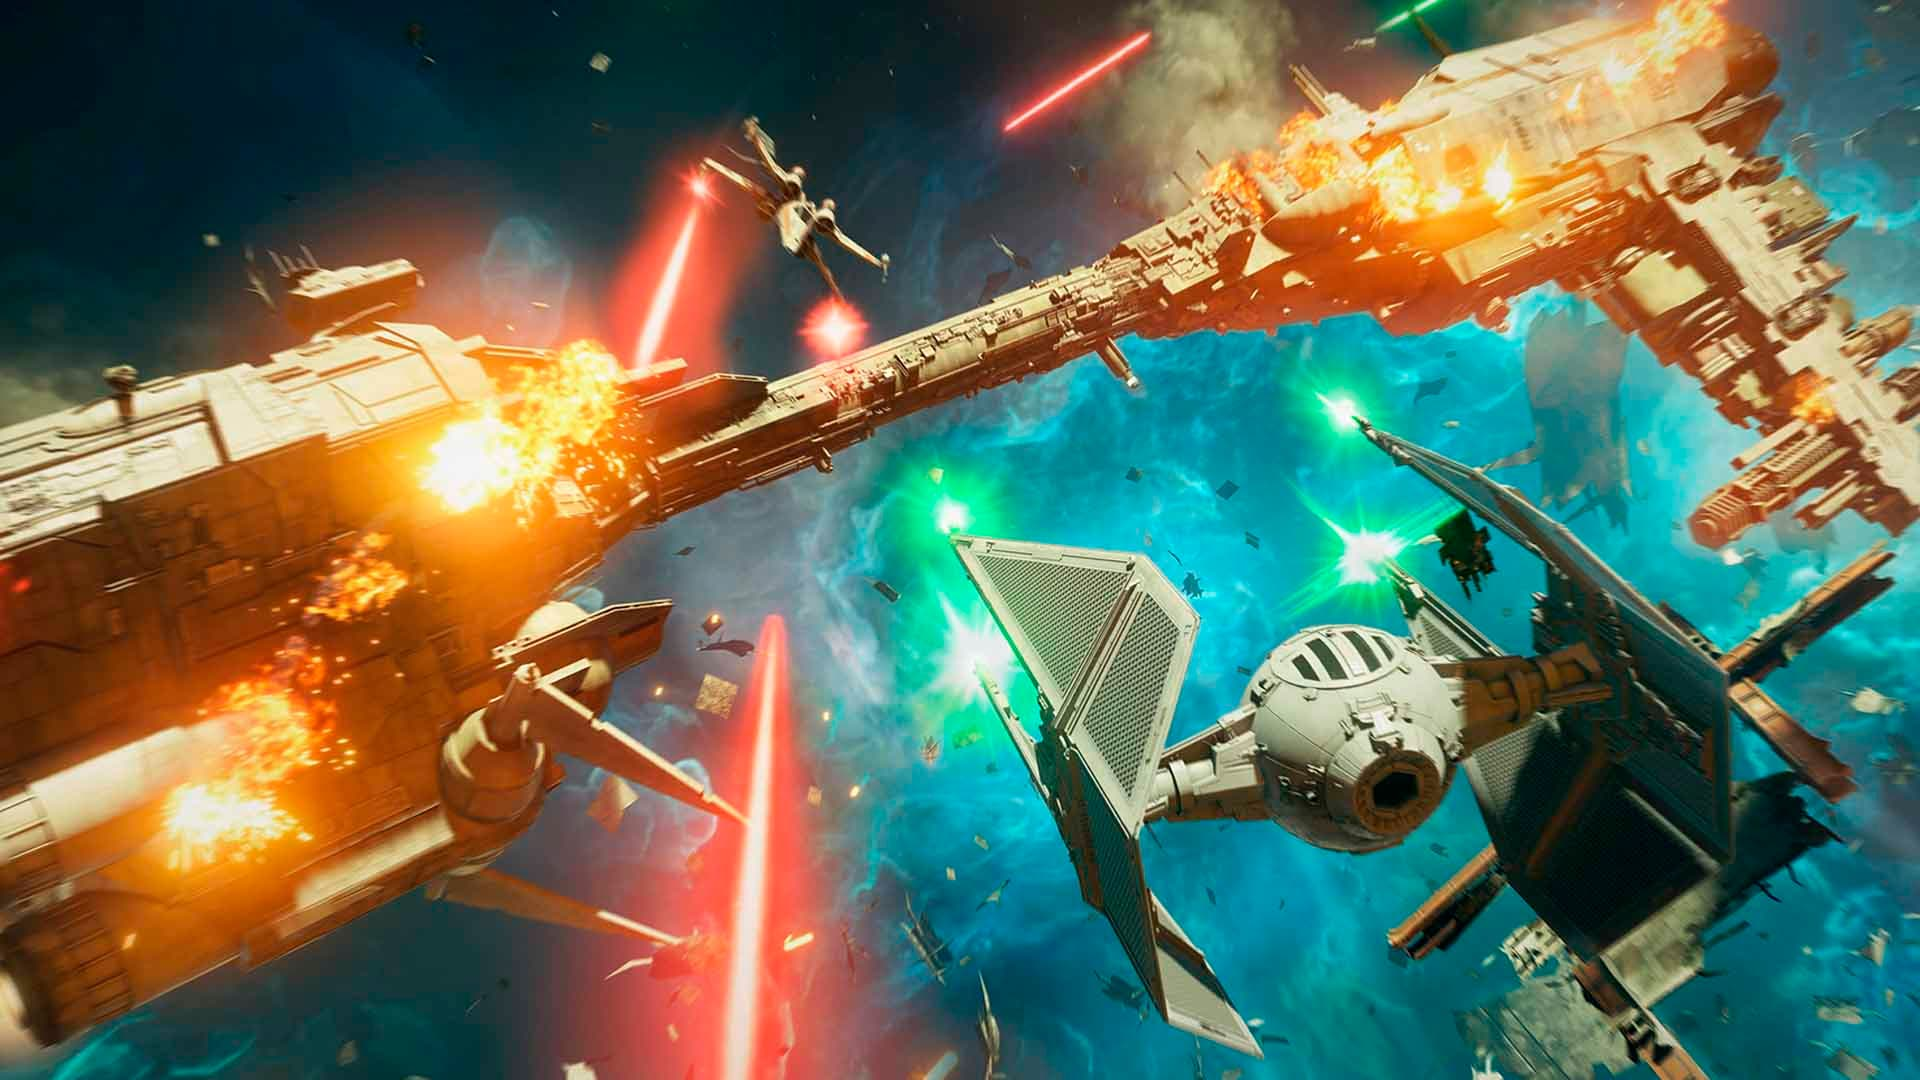 Confirmada la fecha de llegada de Star Wars Squadrons a EA Play y Xbox Game Pass Ultimate 4